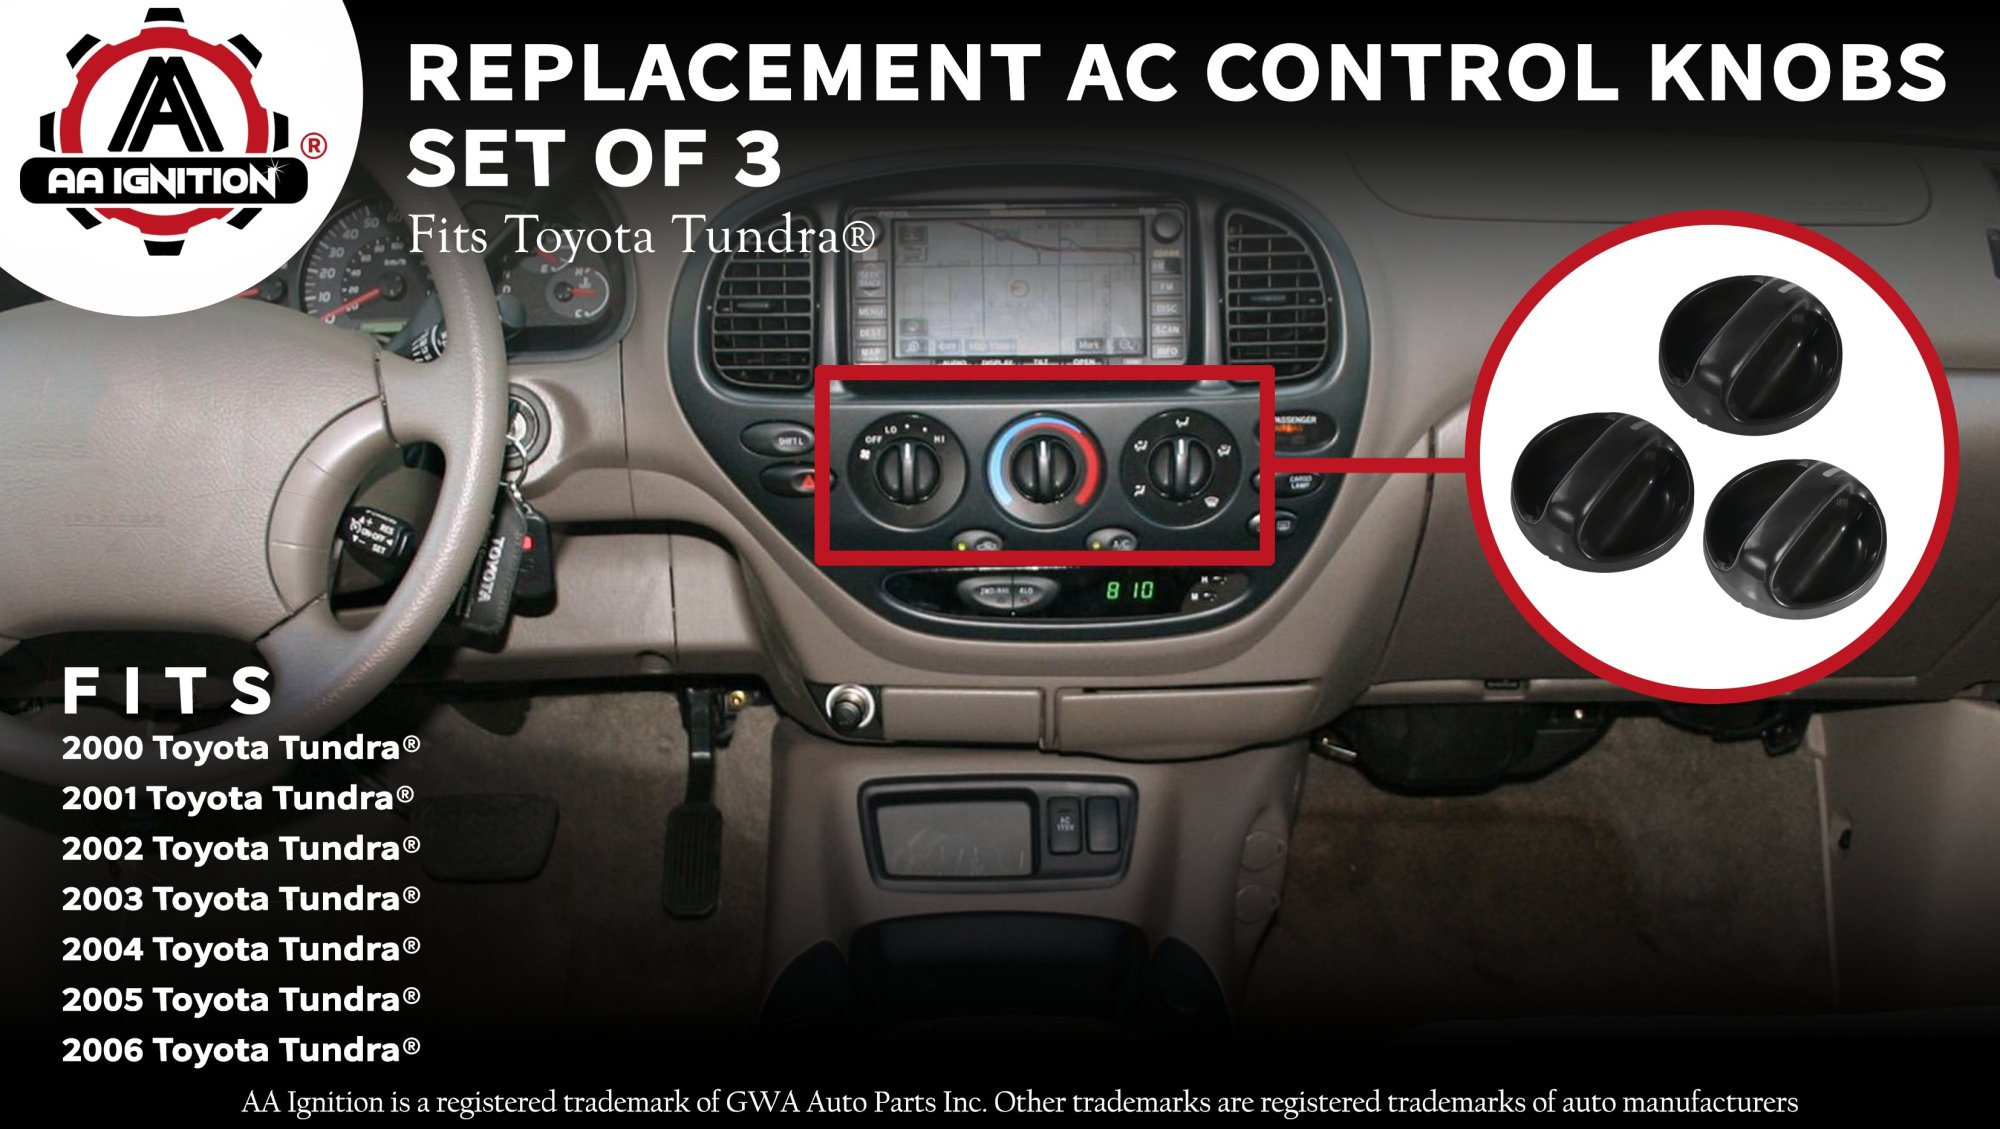 hight resolution of ac climate control knob set of 3 replaces 55905 0c010 559050c010 fits 2000 2001 2002 2003 2004 2005 2006 toyota tundra air conditioner